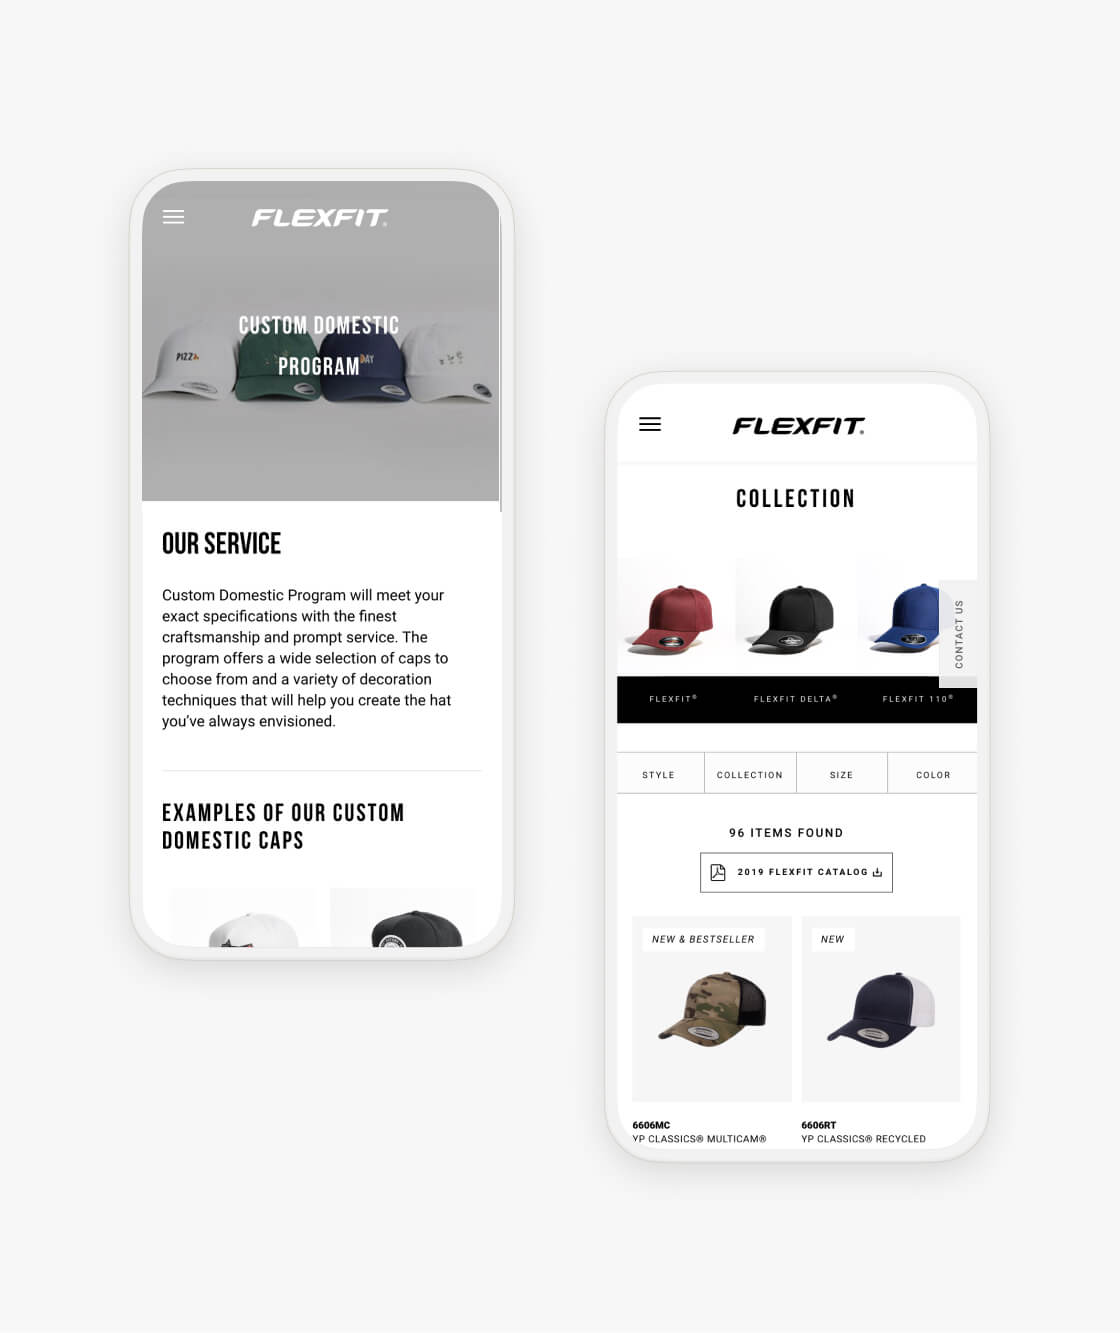 flexfit website pages on smartphones